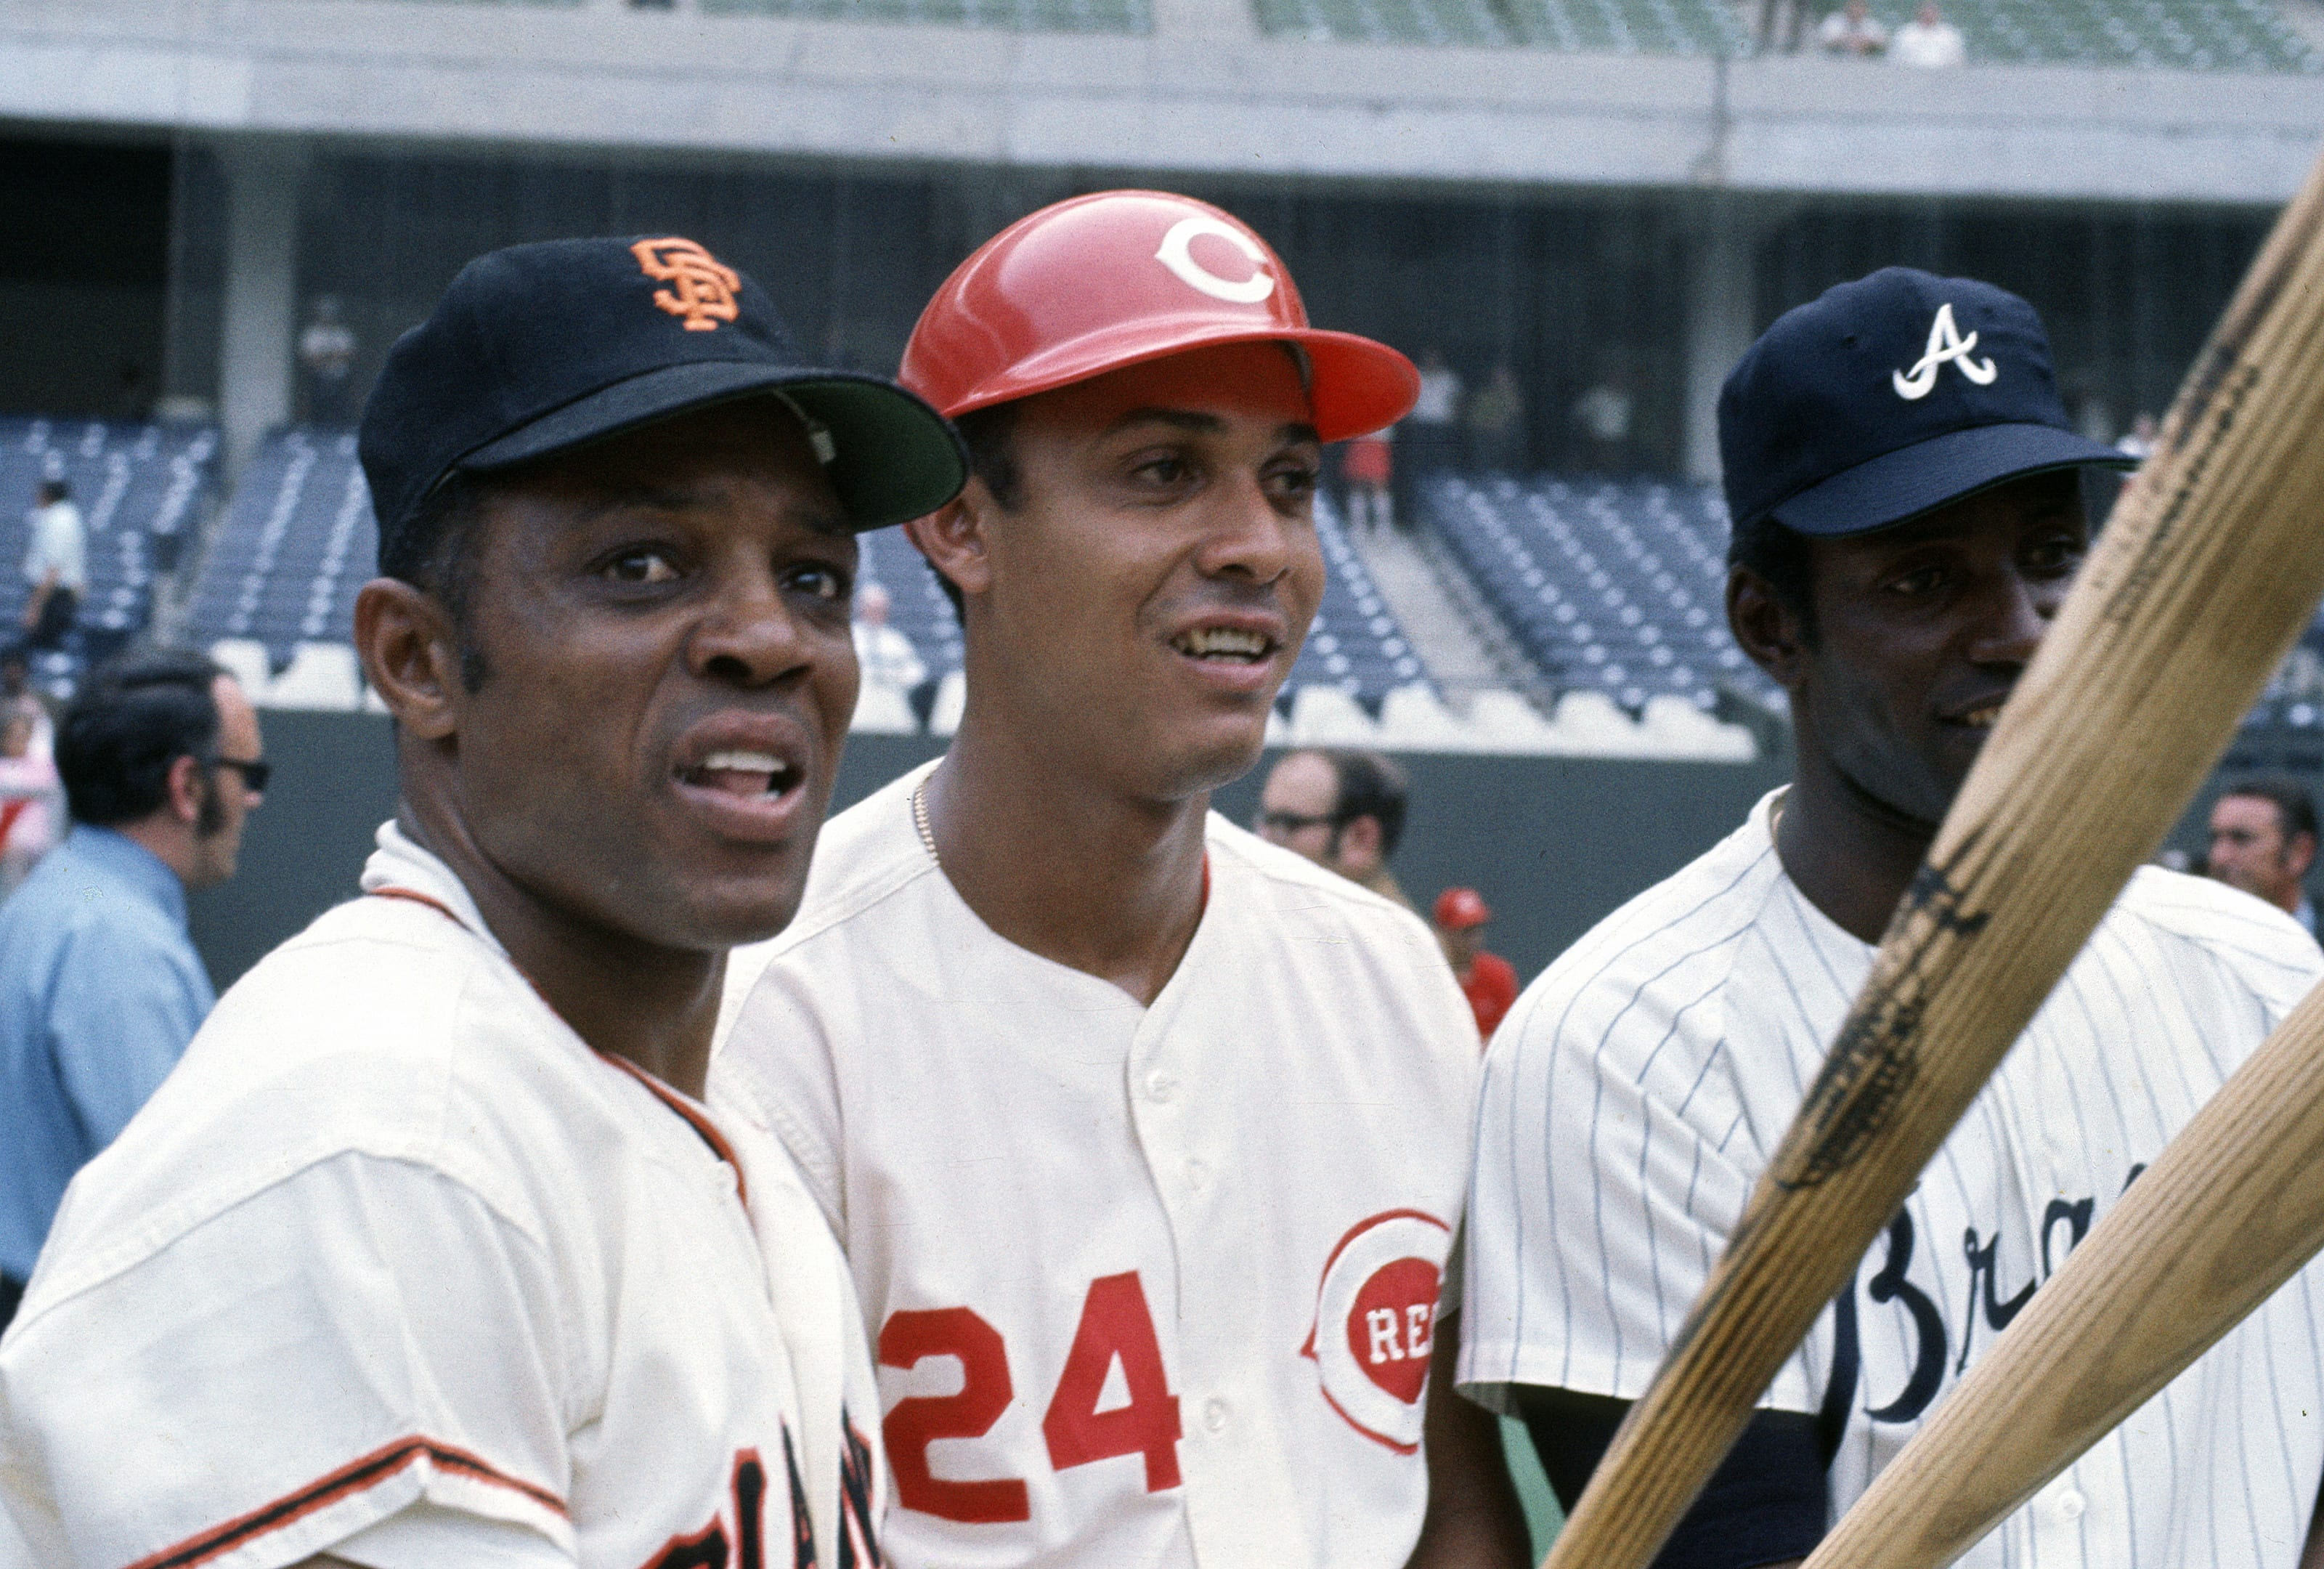 1970 All-Stars: (L-R) Willie Mays #24 of the San Francisco Giants, Tony Perez #24 of the Cincinnati Reds and Rico Carty #25 of the Atlanta Braves. (Photo by Focus on Sport/Getty Images)